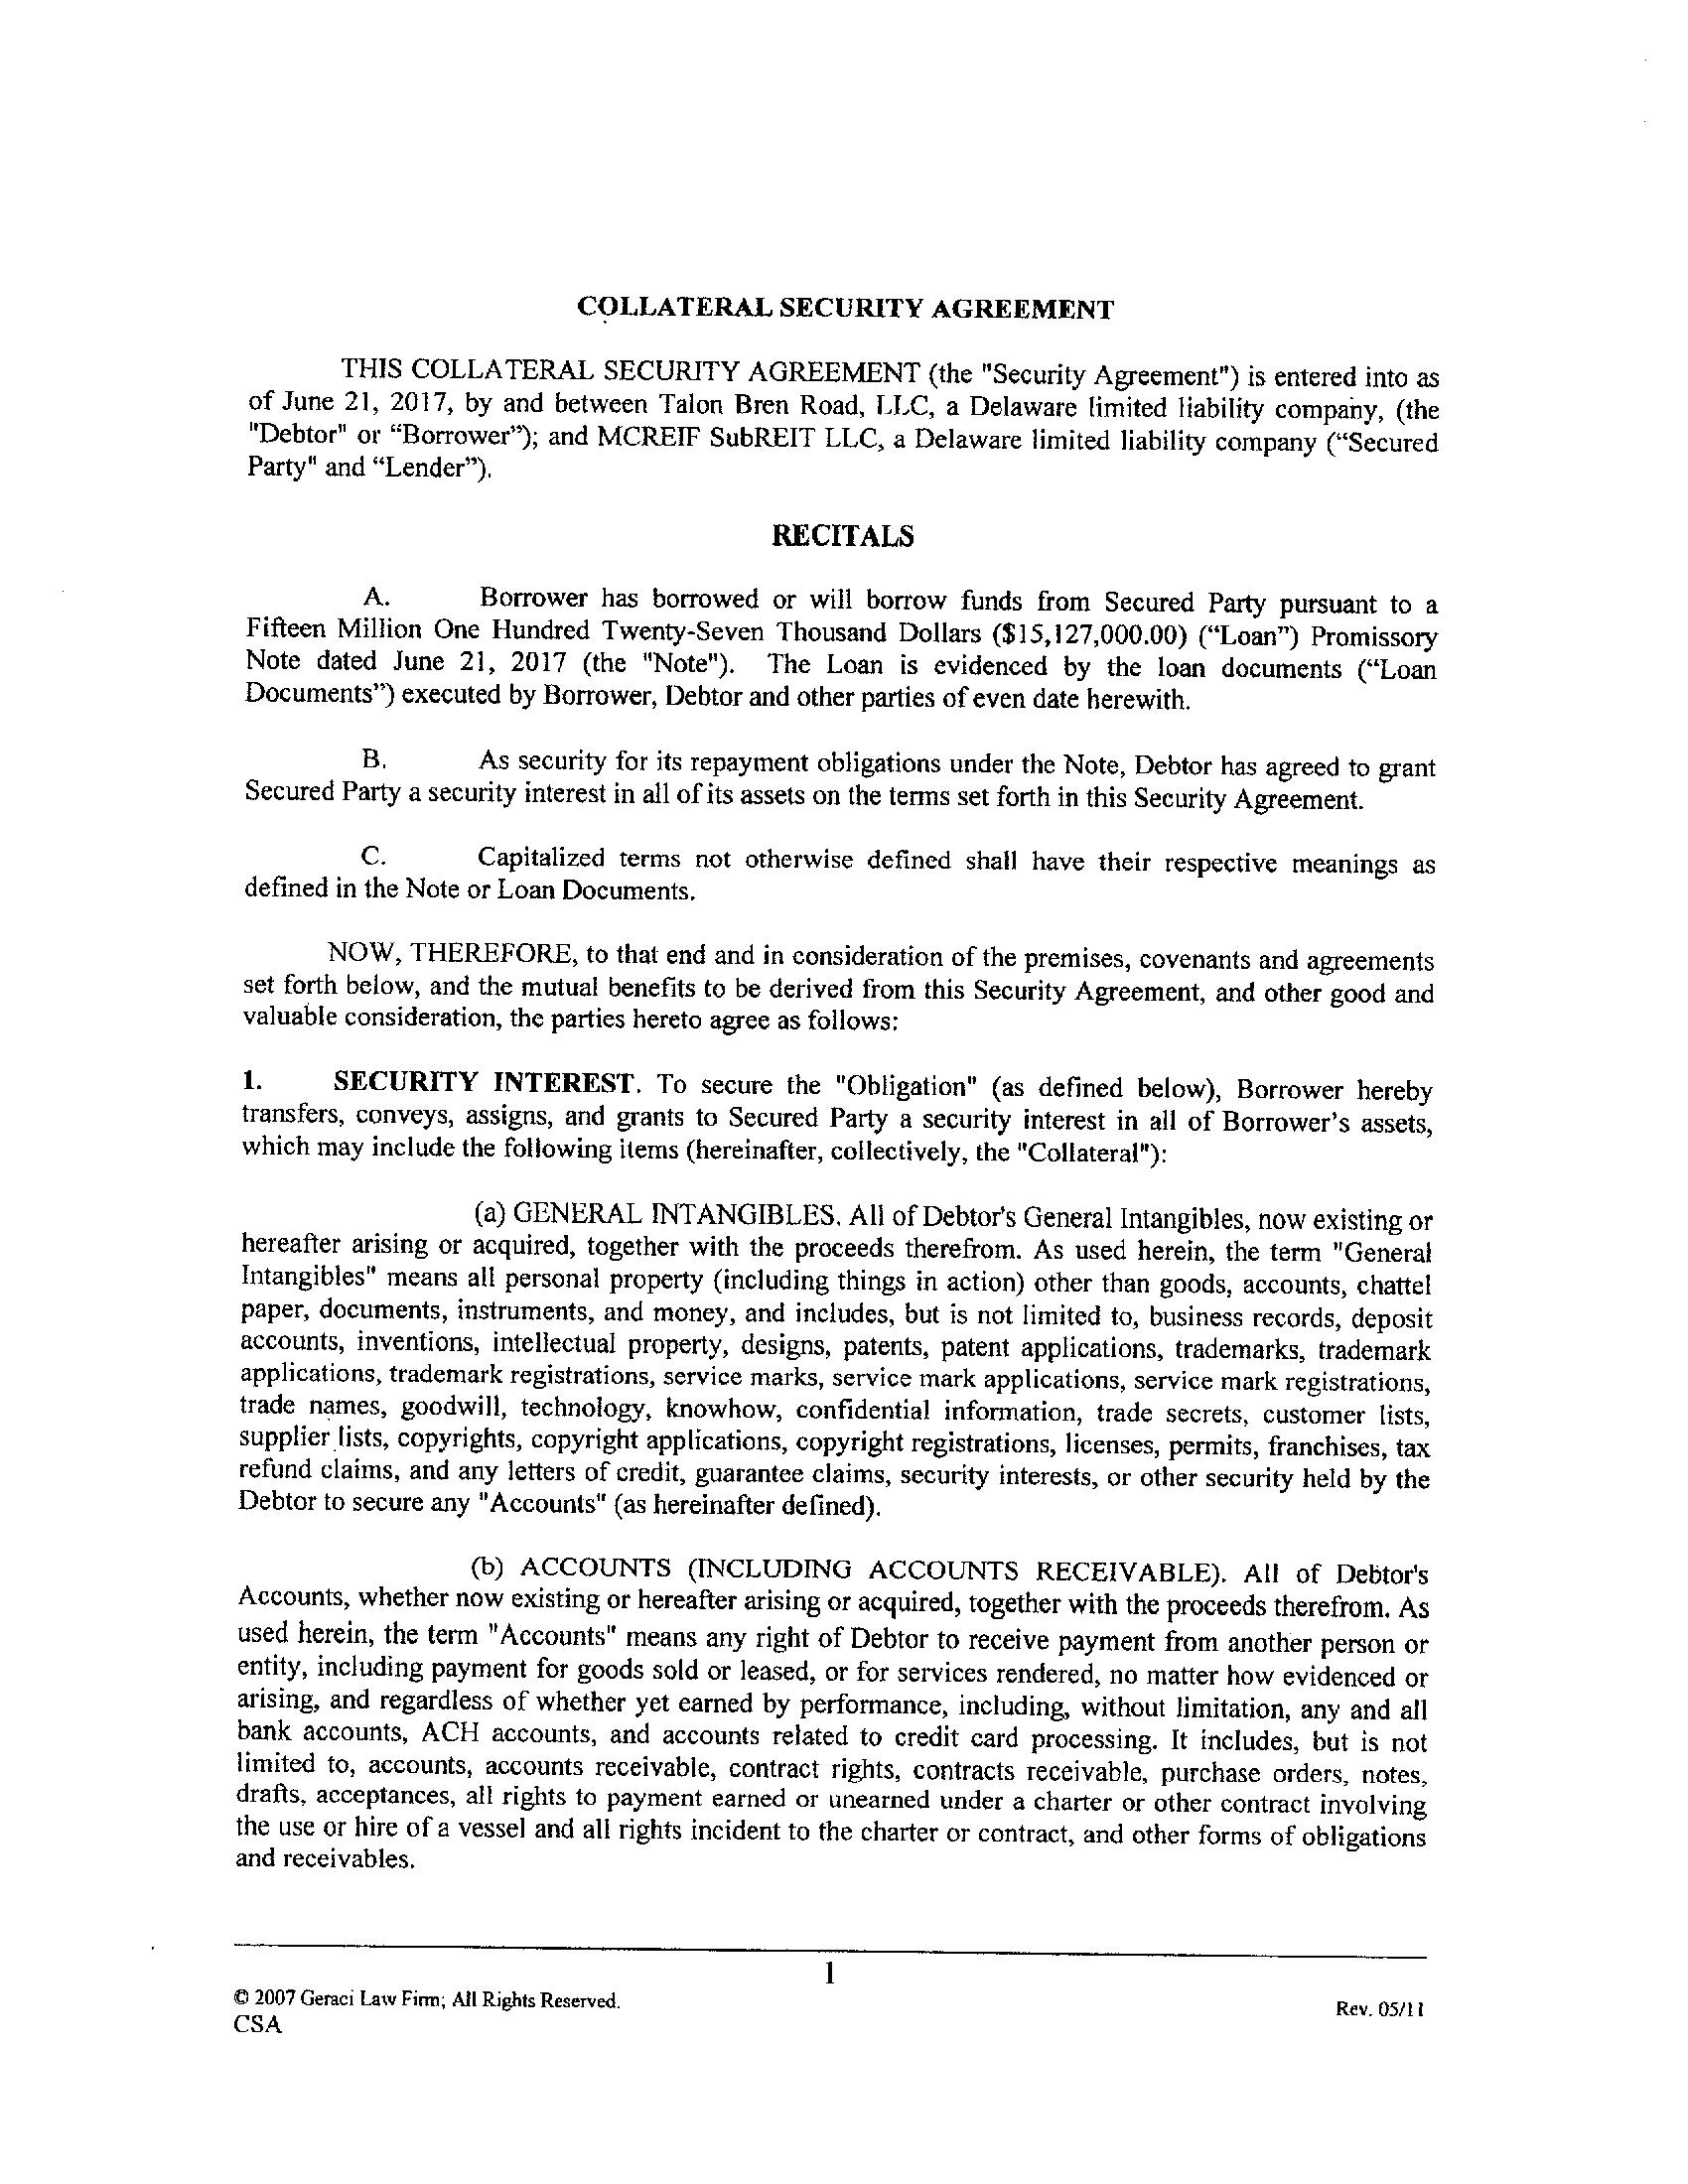 TALON REAL ESTATE HOLDING CORP – Security Agreement